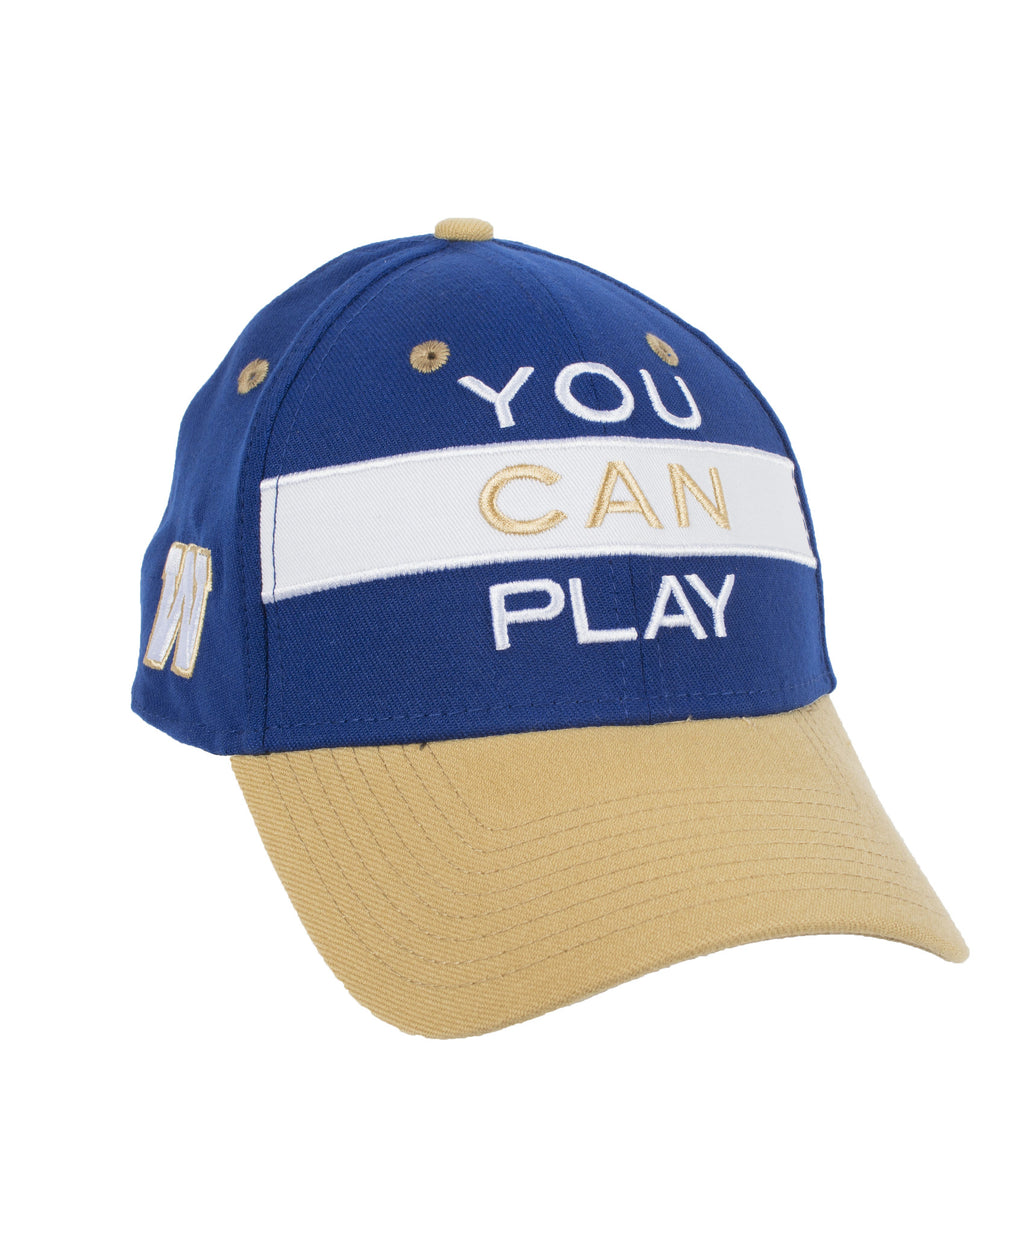 3930 You Can Play Flex Fit Cap